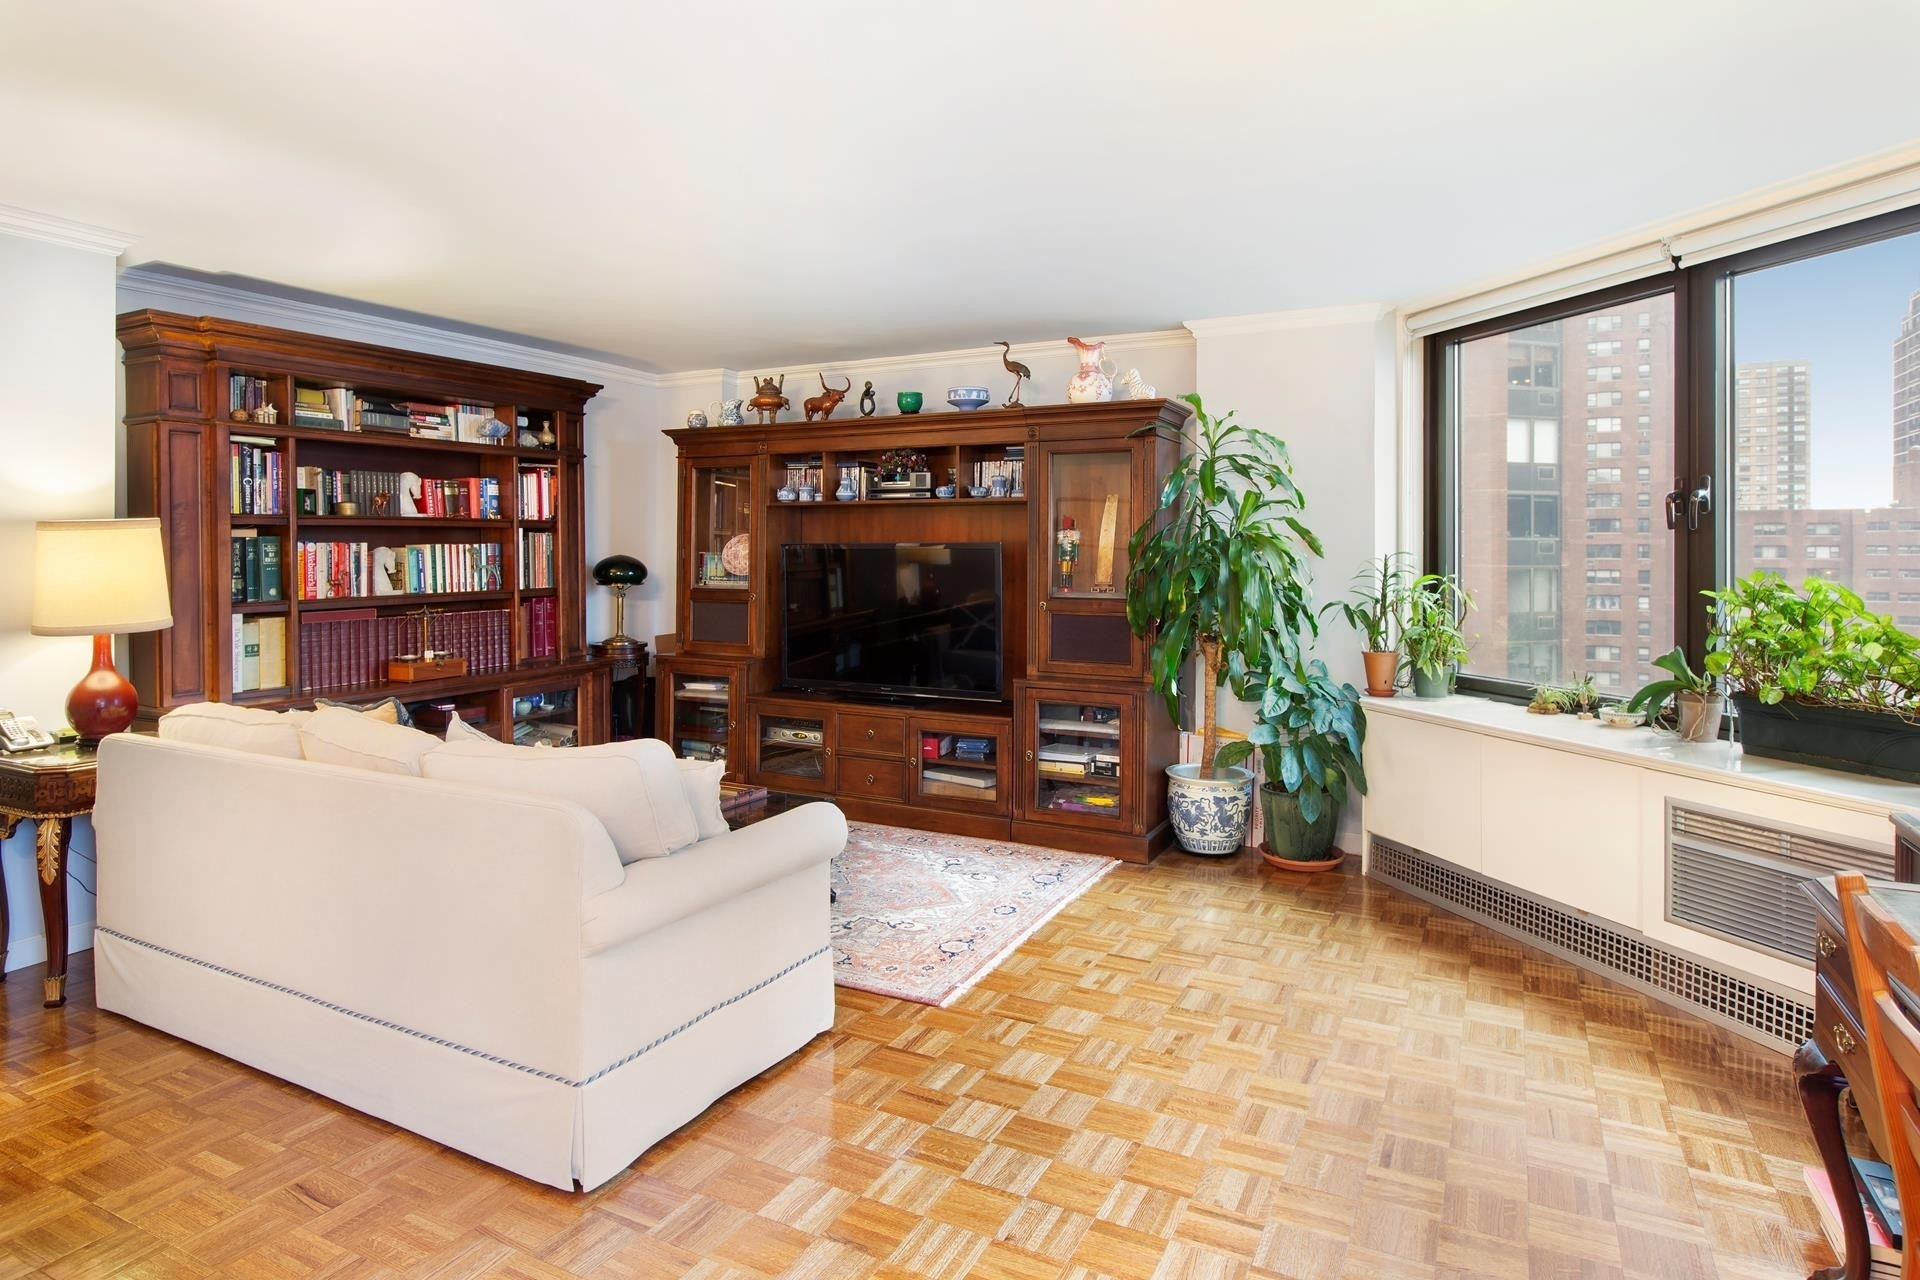 1. Condominiums for Sale at Ruppert Towers 2, 1619 THIRD AVE , 11A Yorkville, New York, NY 10128